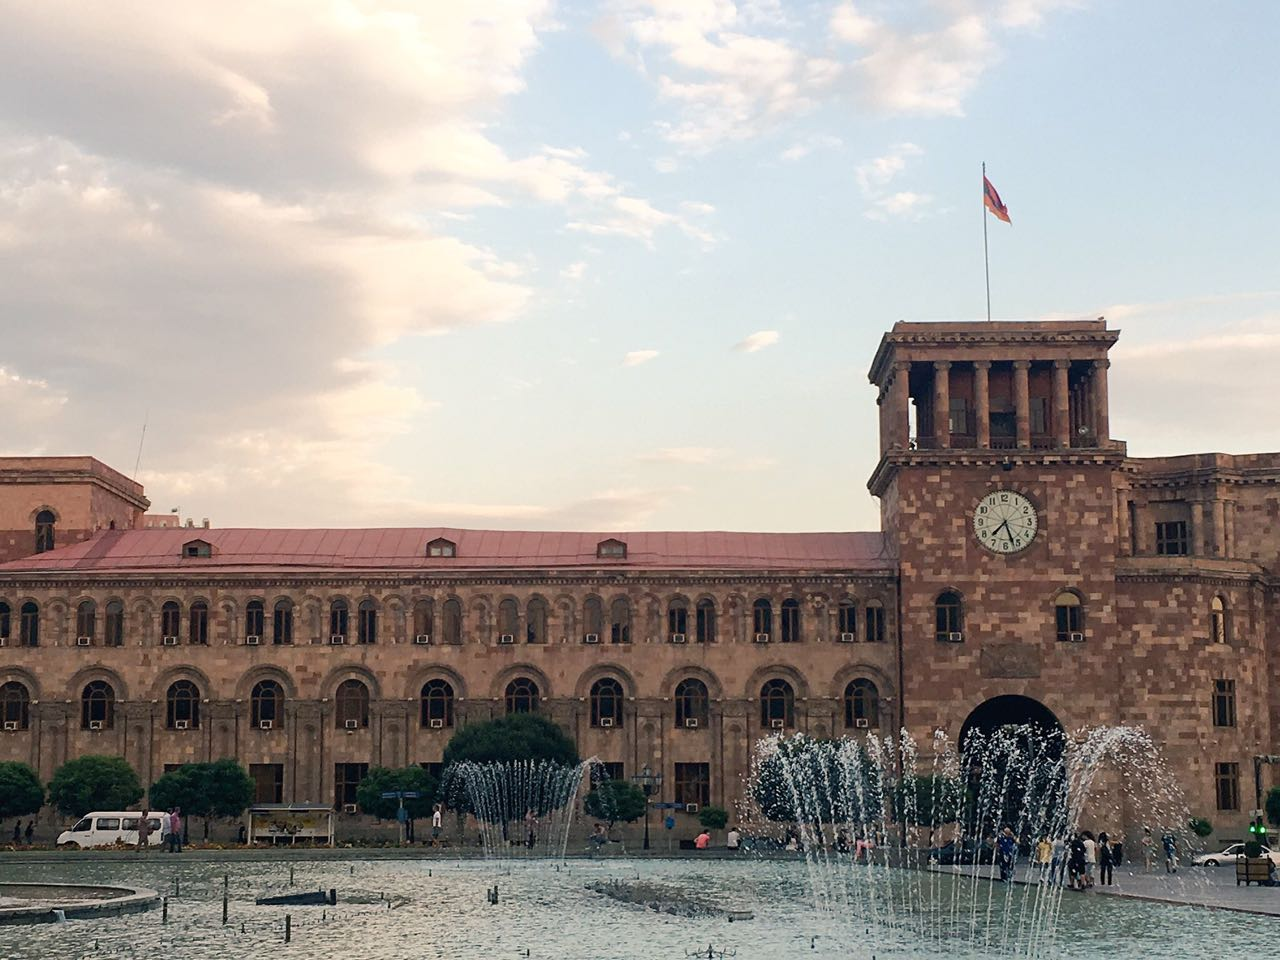 10 Things I Learned About Armenia